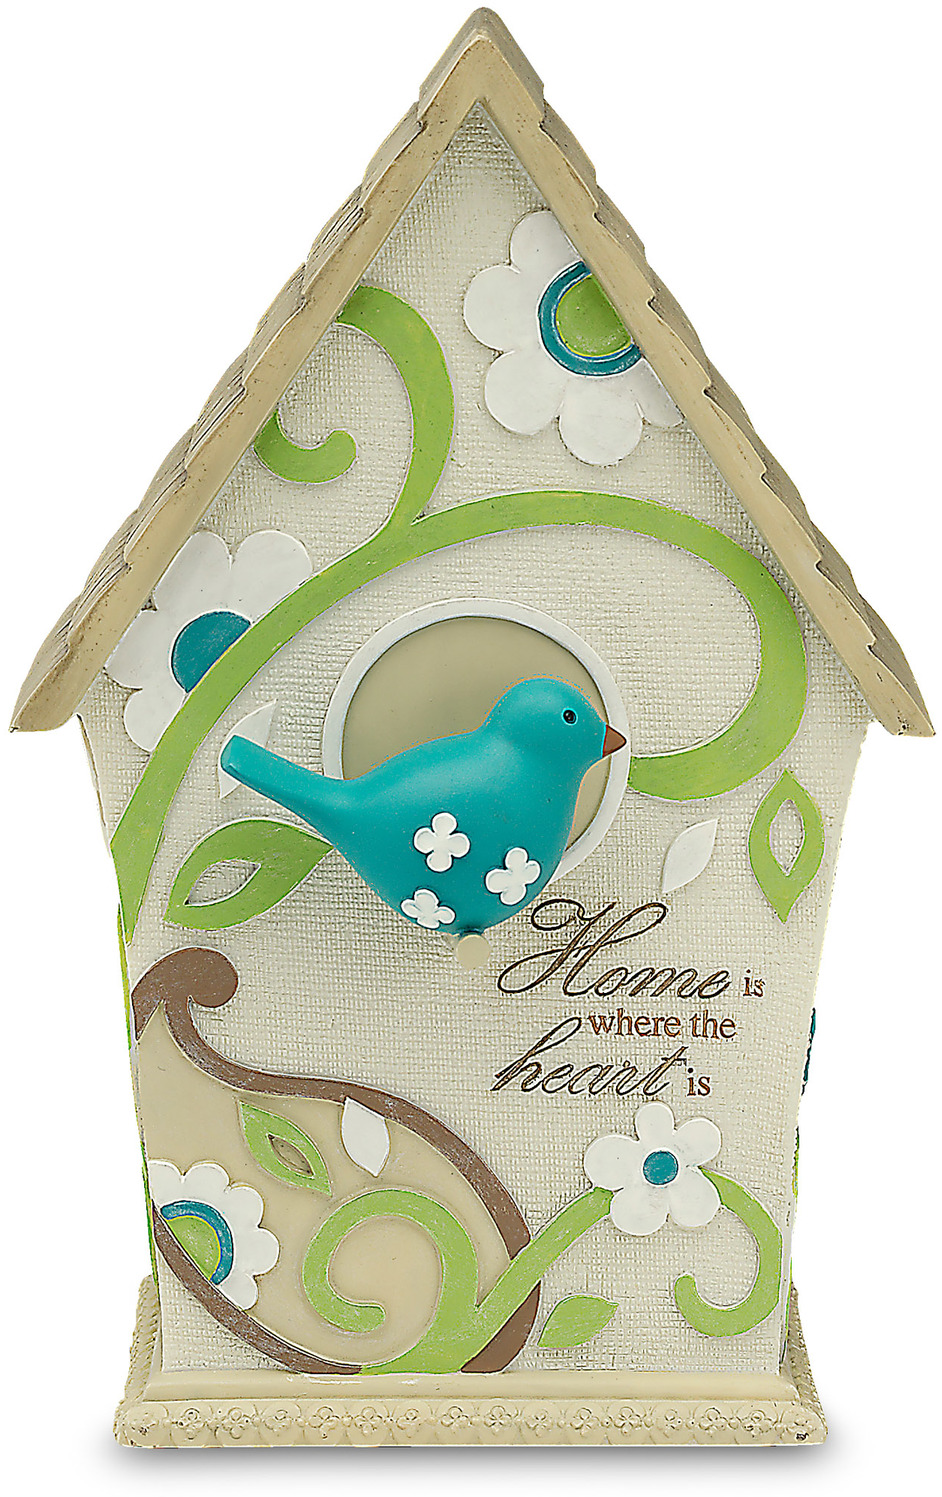 "Home by Perfectly Paisley - Home - 7.5"" Decorative Birdhouse"